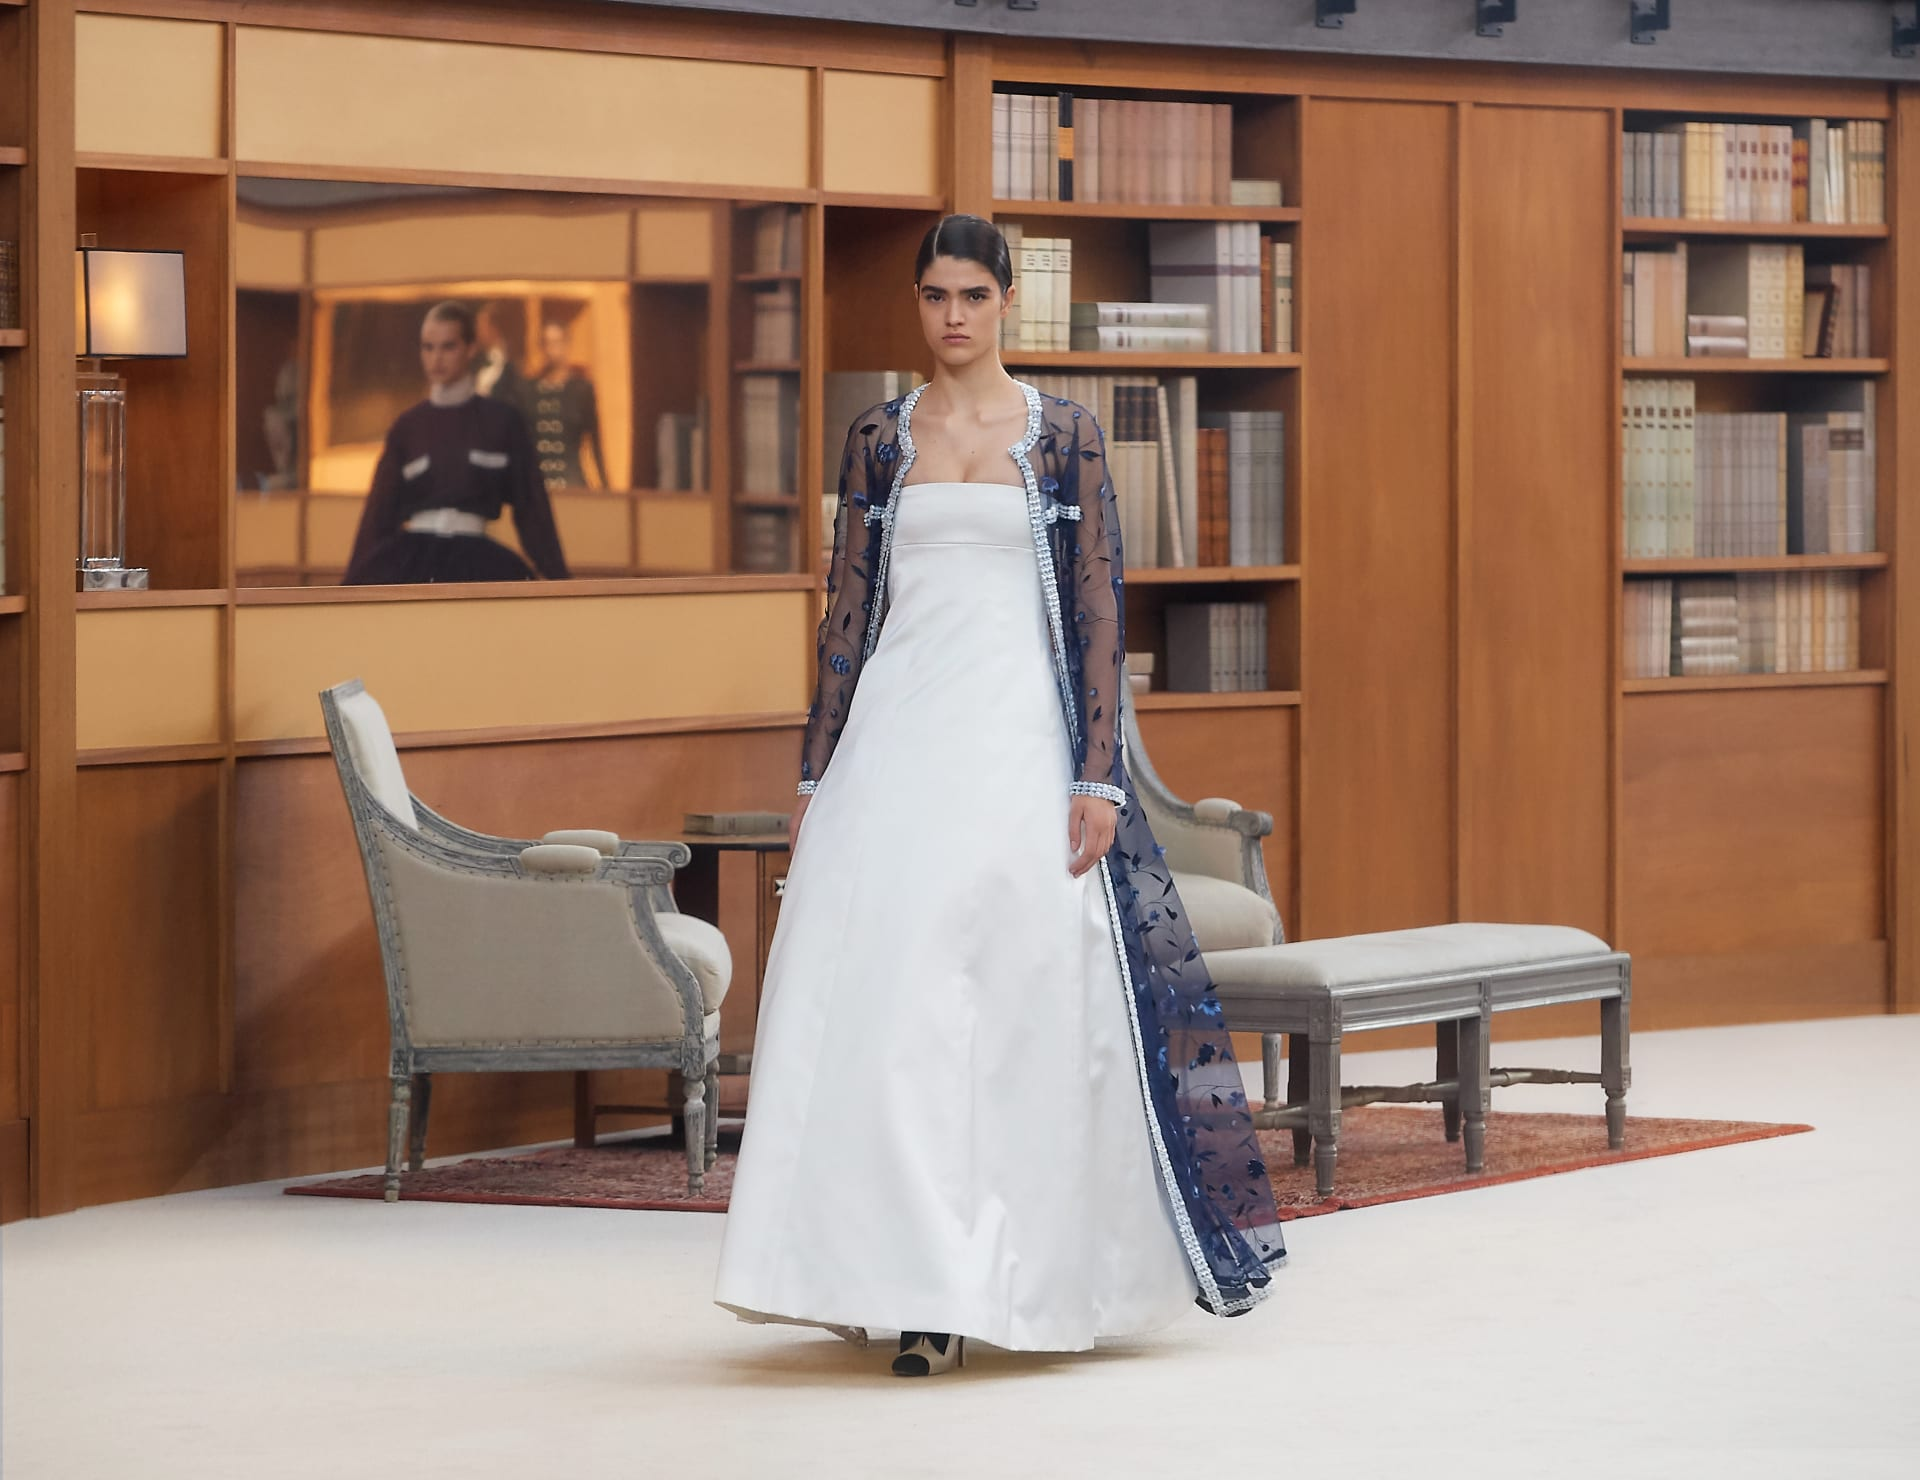 View 1 - Look 50 - Fall-Winter 2019/20 Haute-Couture - see full sized version